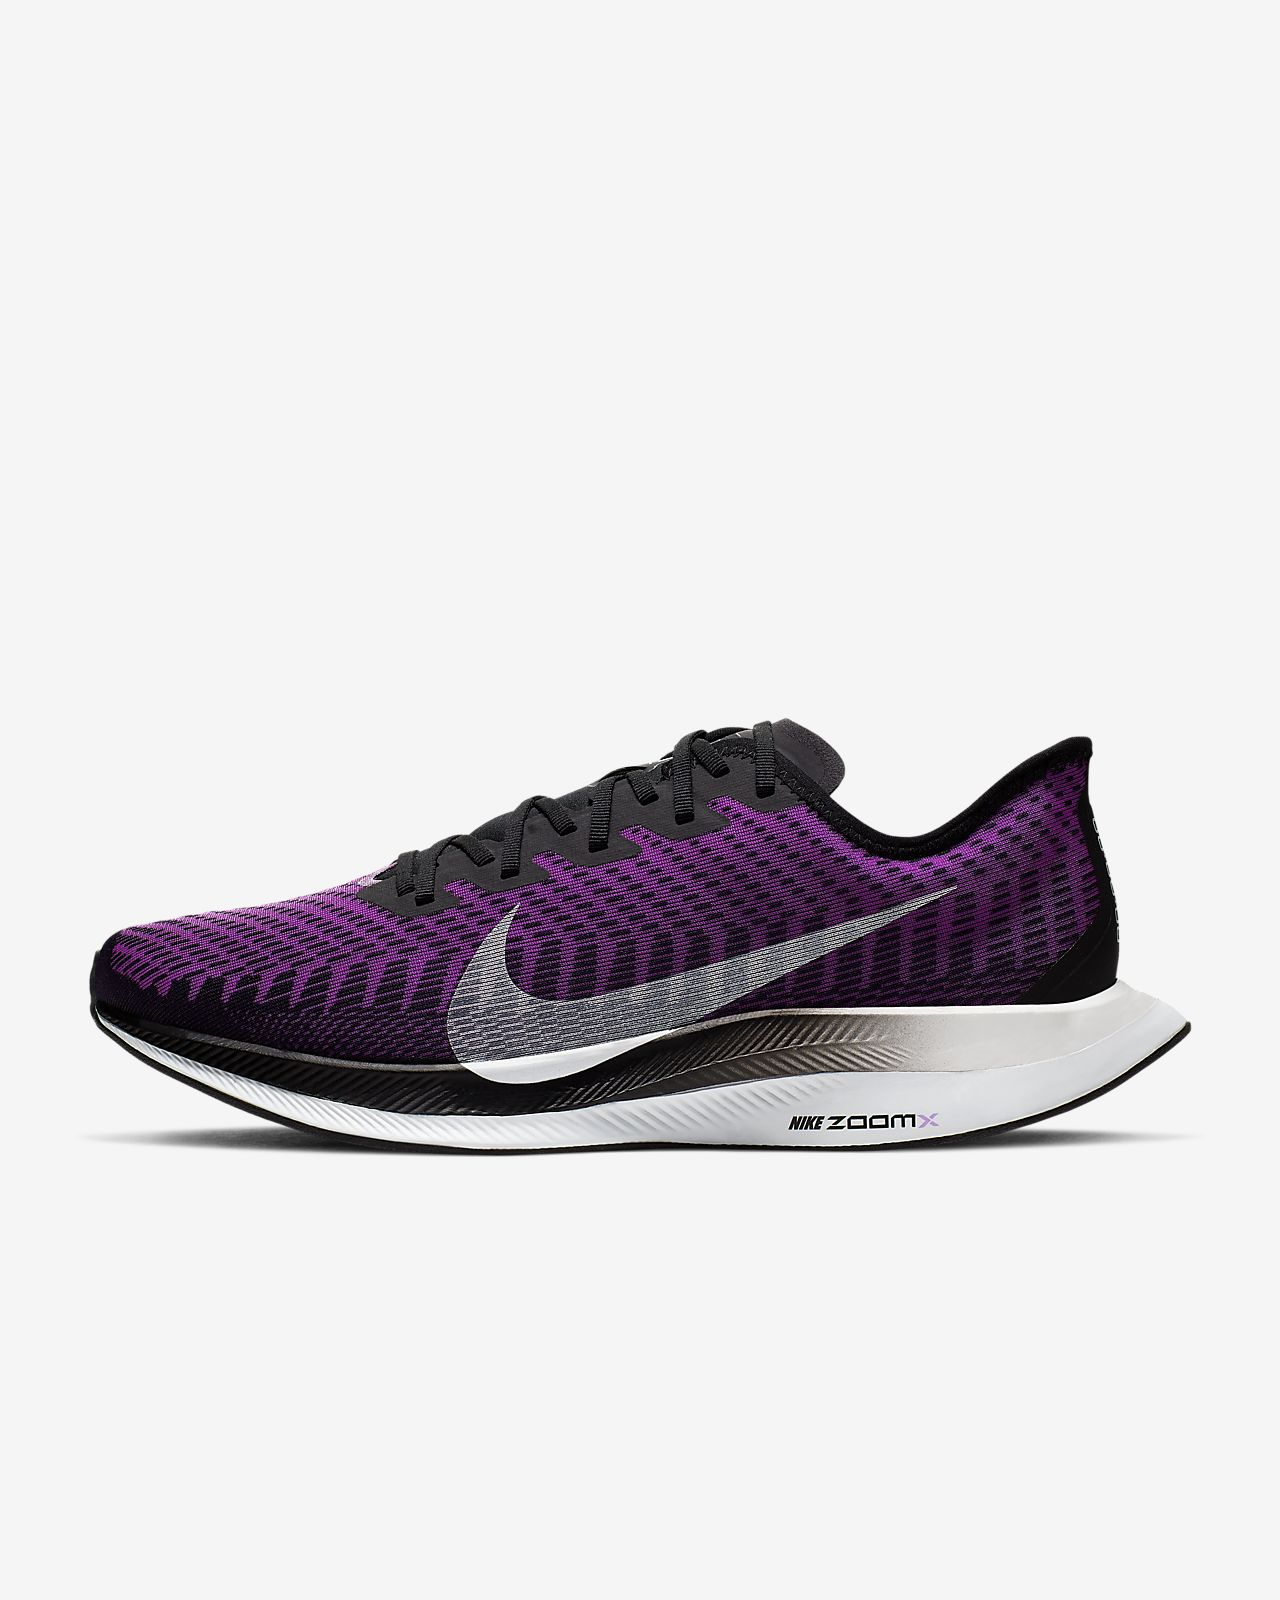 2 Chaussure Pour Zoom Turbo De Pegasus Running N80mnw Nike Homme 80vNnymPwO